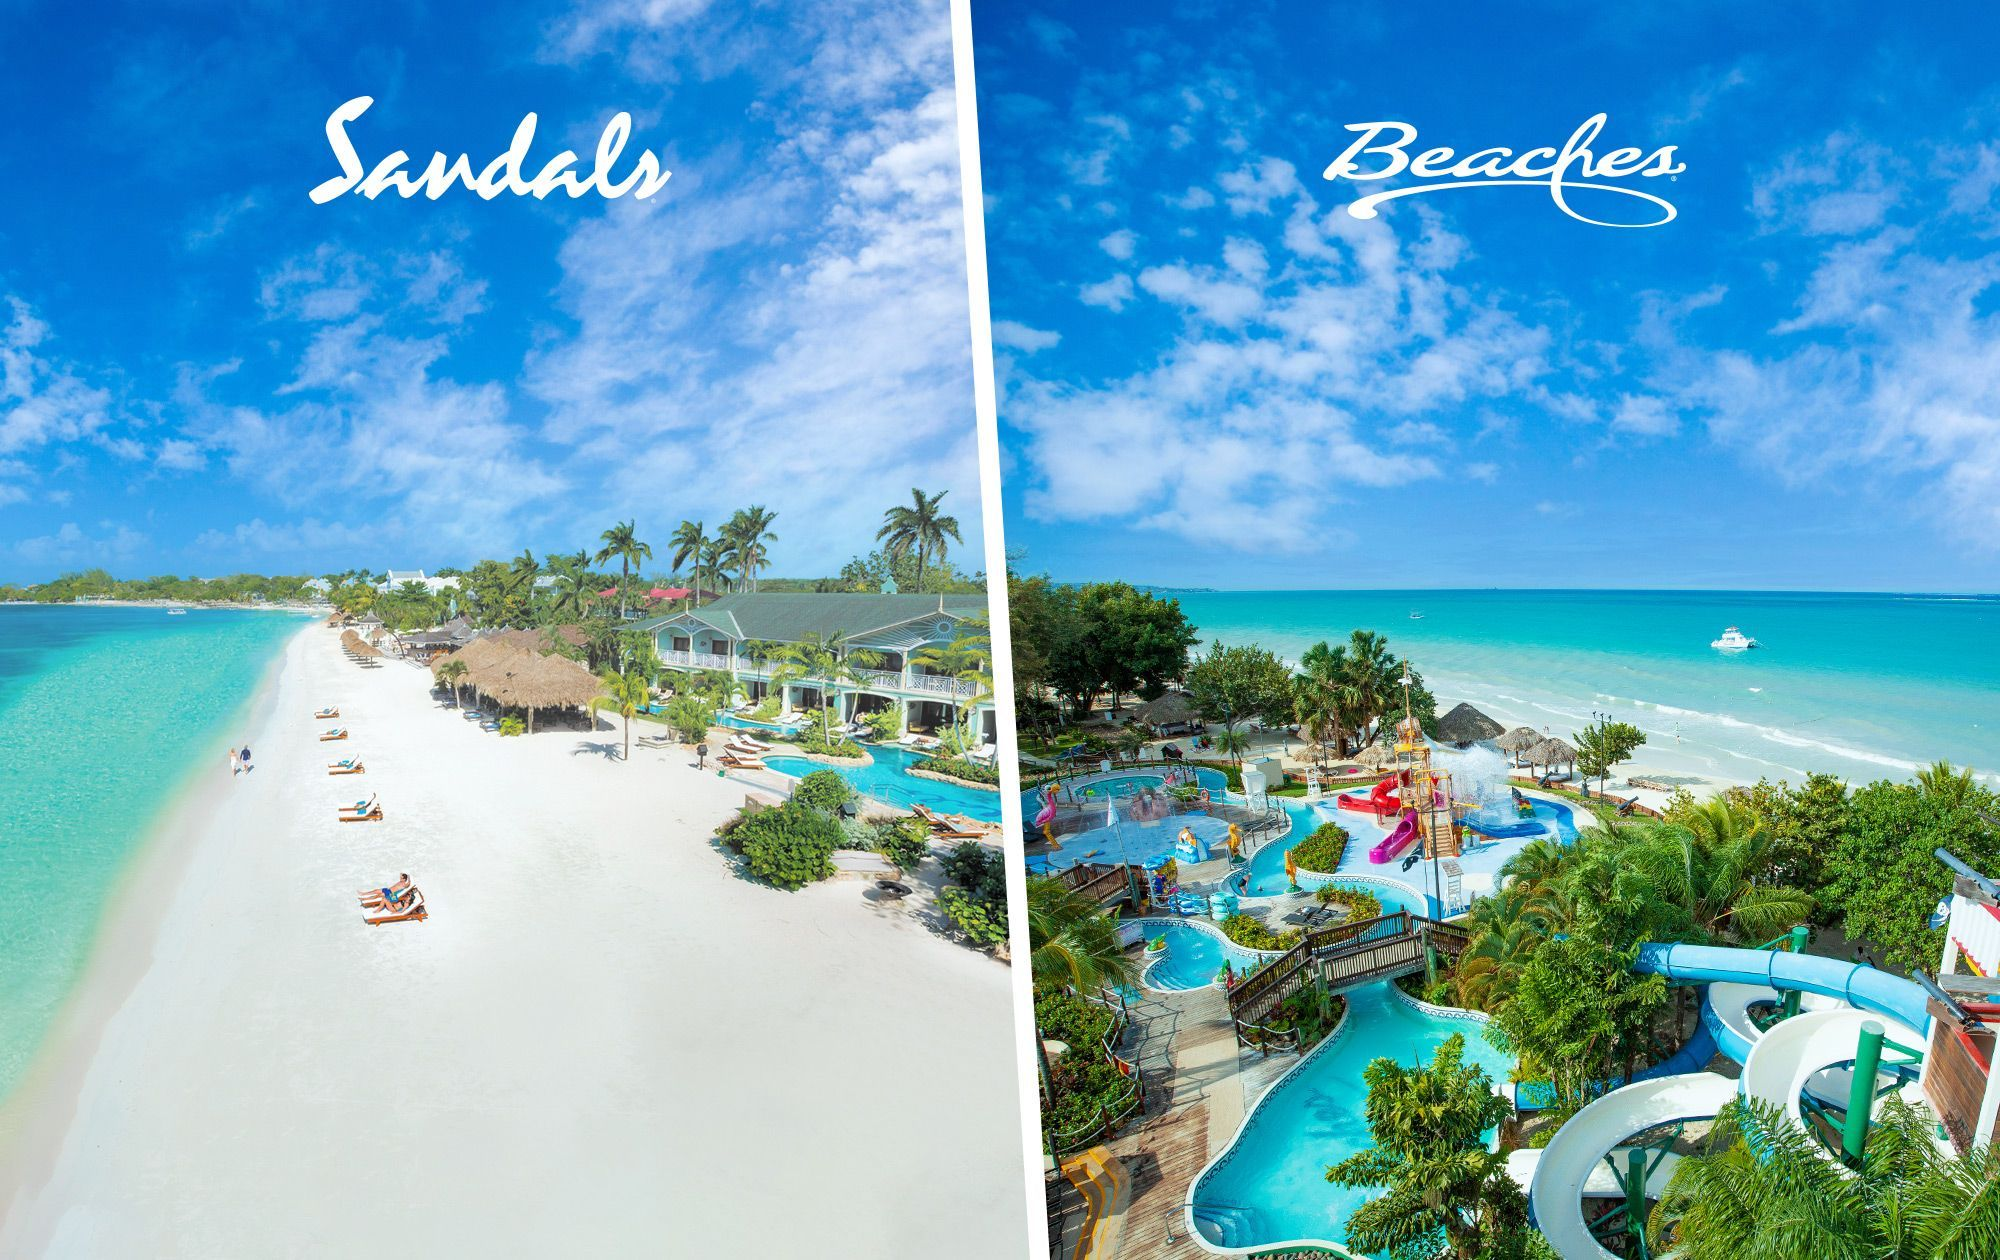 Sandals Negril vs Beaches Negril